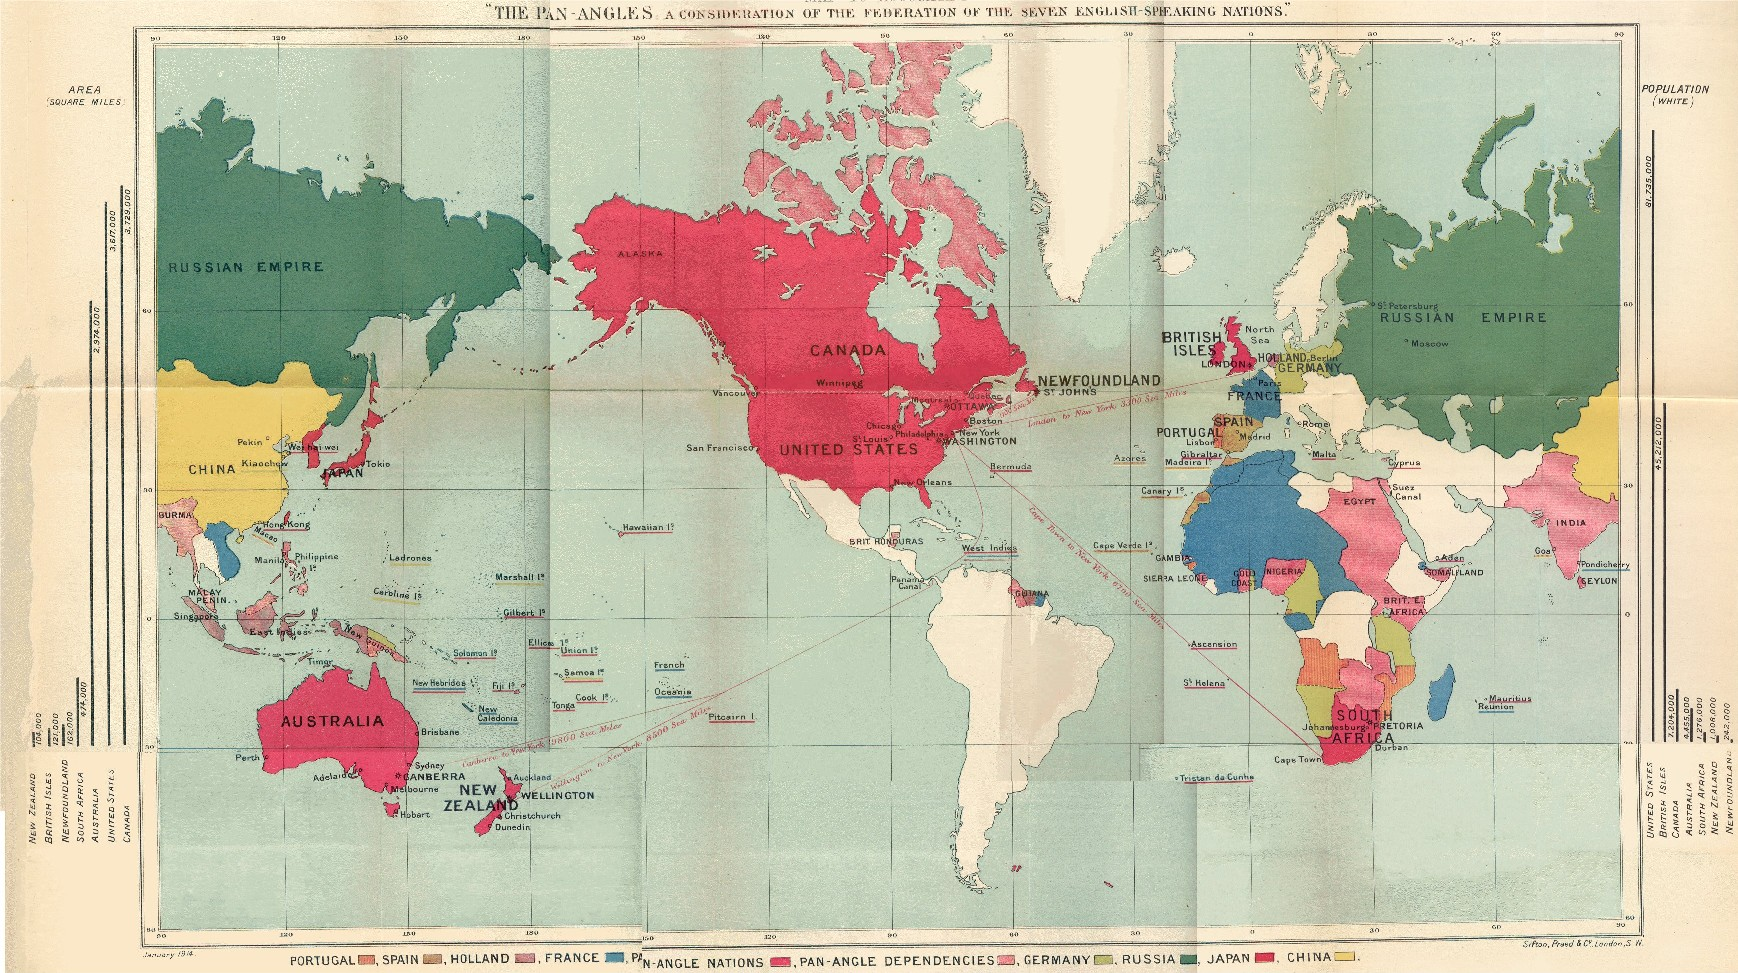 Us Territorial Influence Map Labeled - Us territorial influence 1914 map labeled